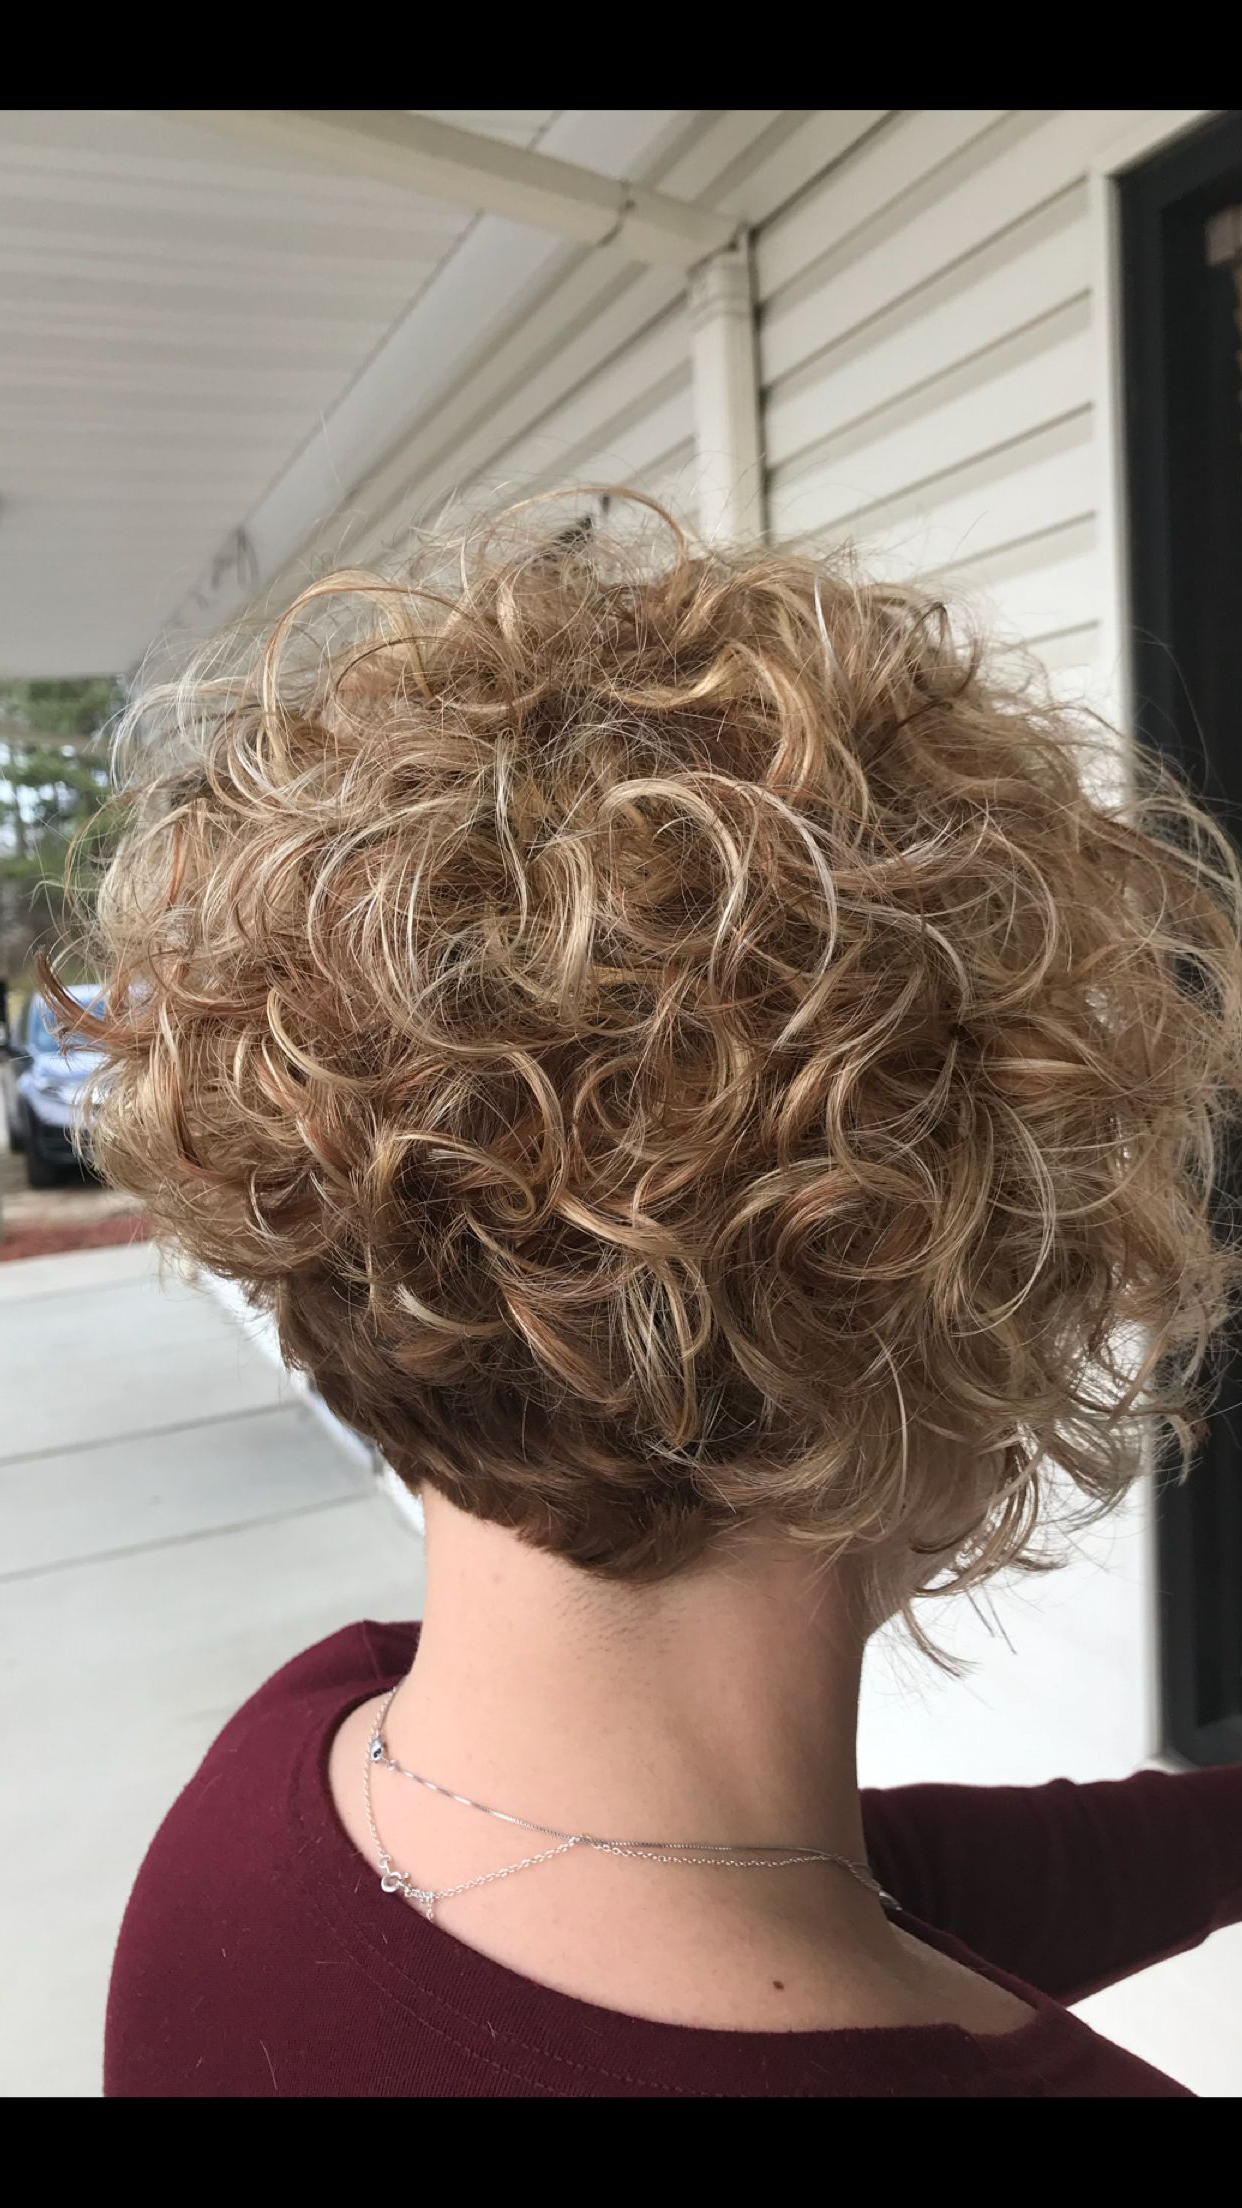 Pingladis Ondina Cubas Rapalo On Cortes De Cabello | Pinterest With Regard To Angelic Blonde Balayage Bob Hairstyles With Curls (View 18 of 20)